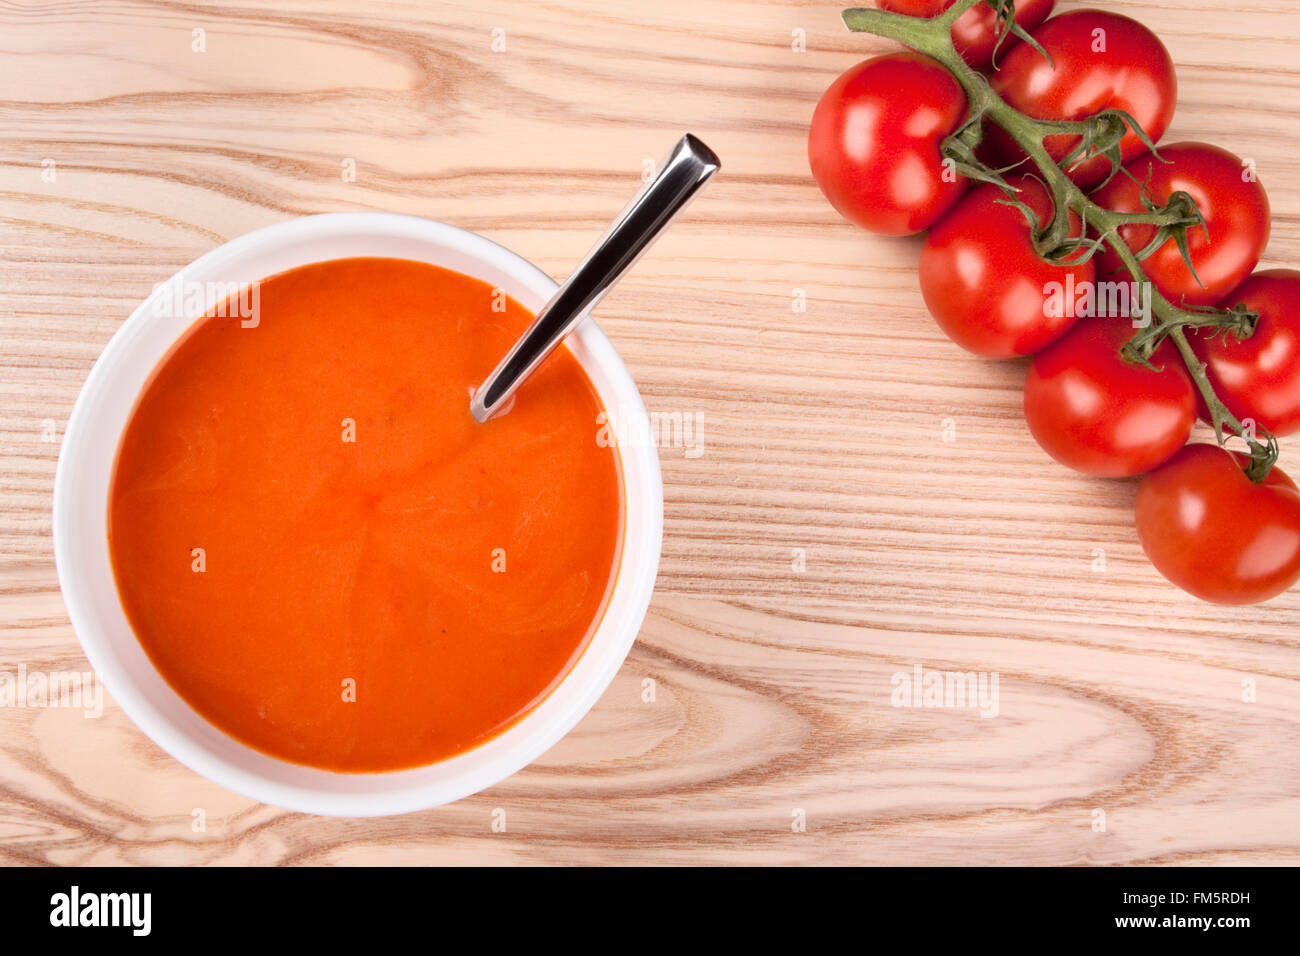 Top view of a bowl with tomato soup. - Stock Image